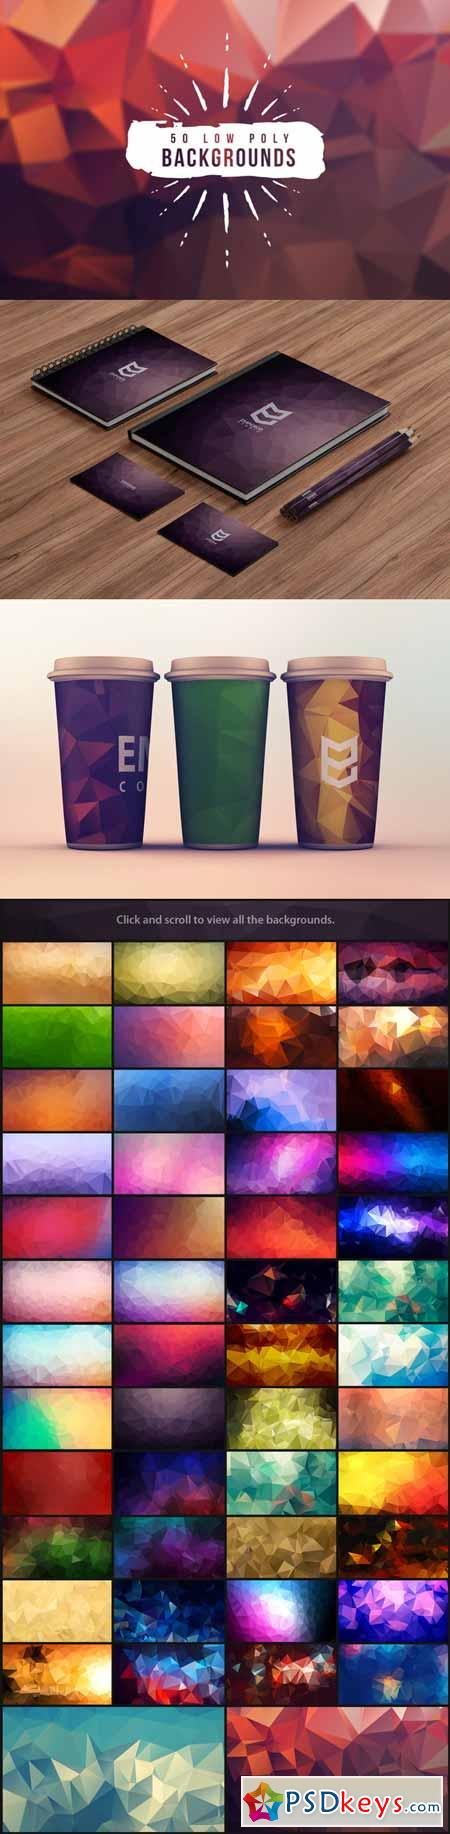 50 Low Poly Backgrounds 94049